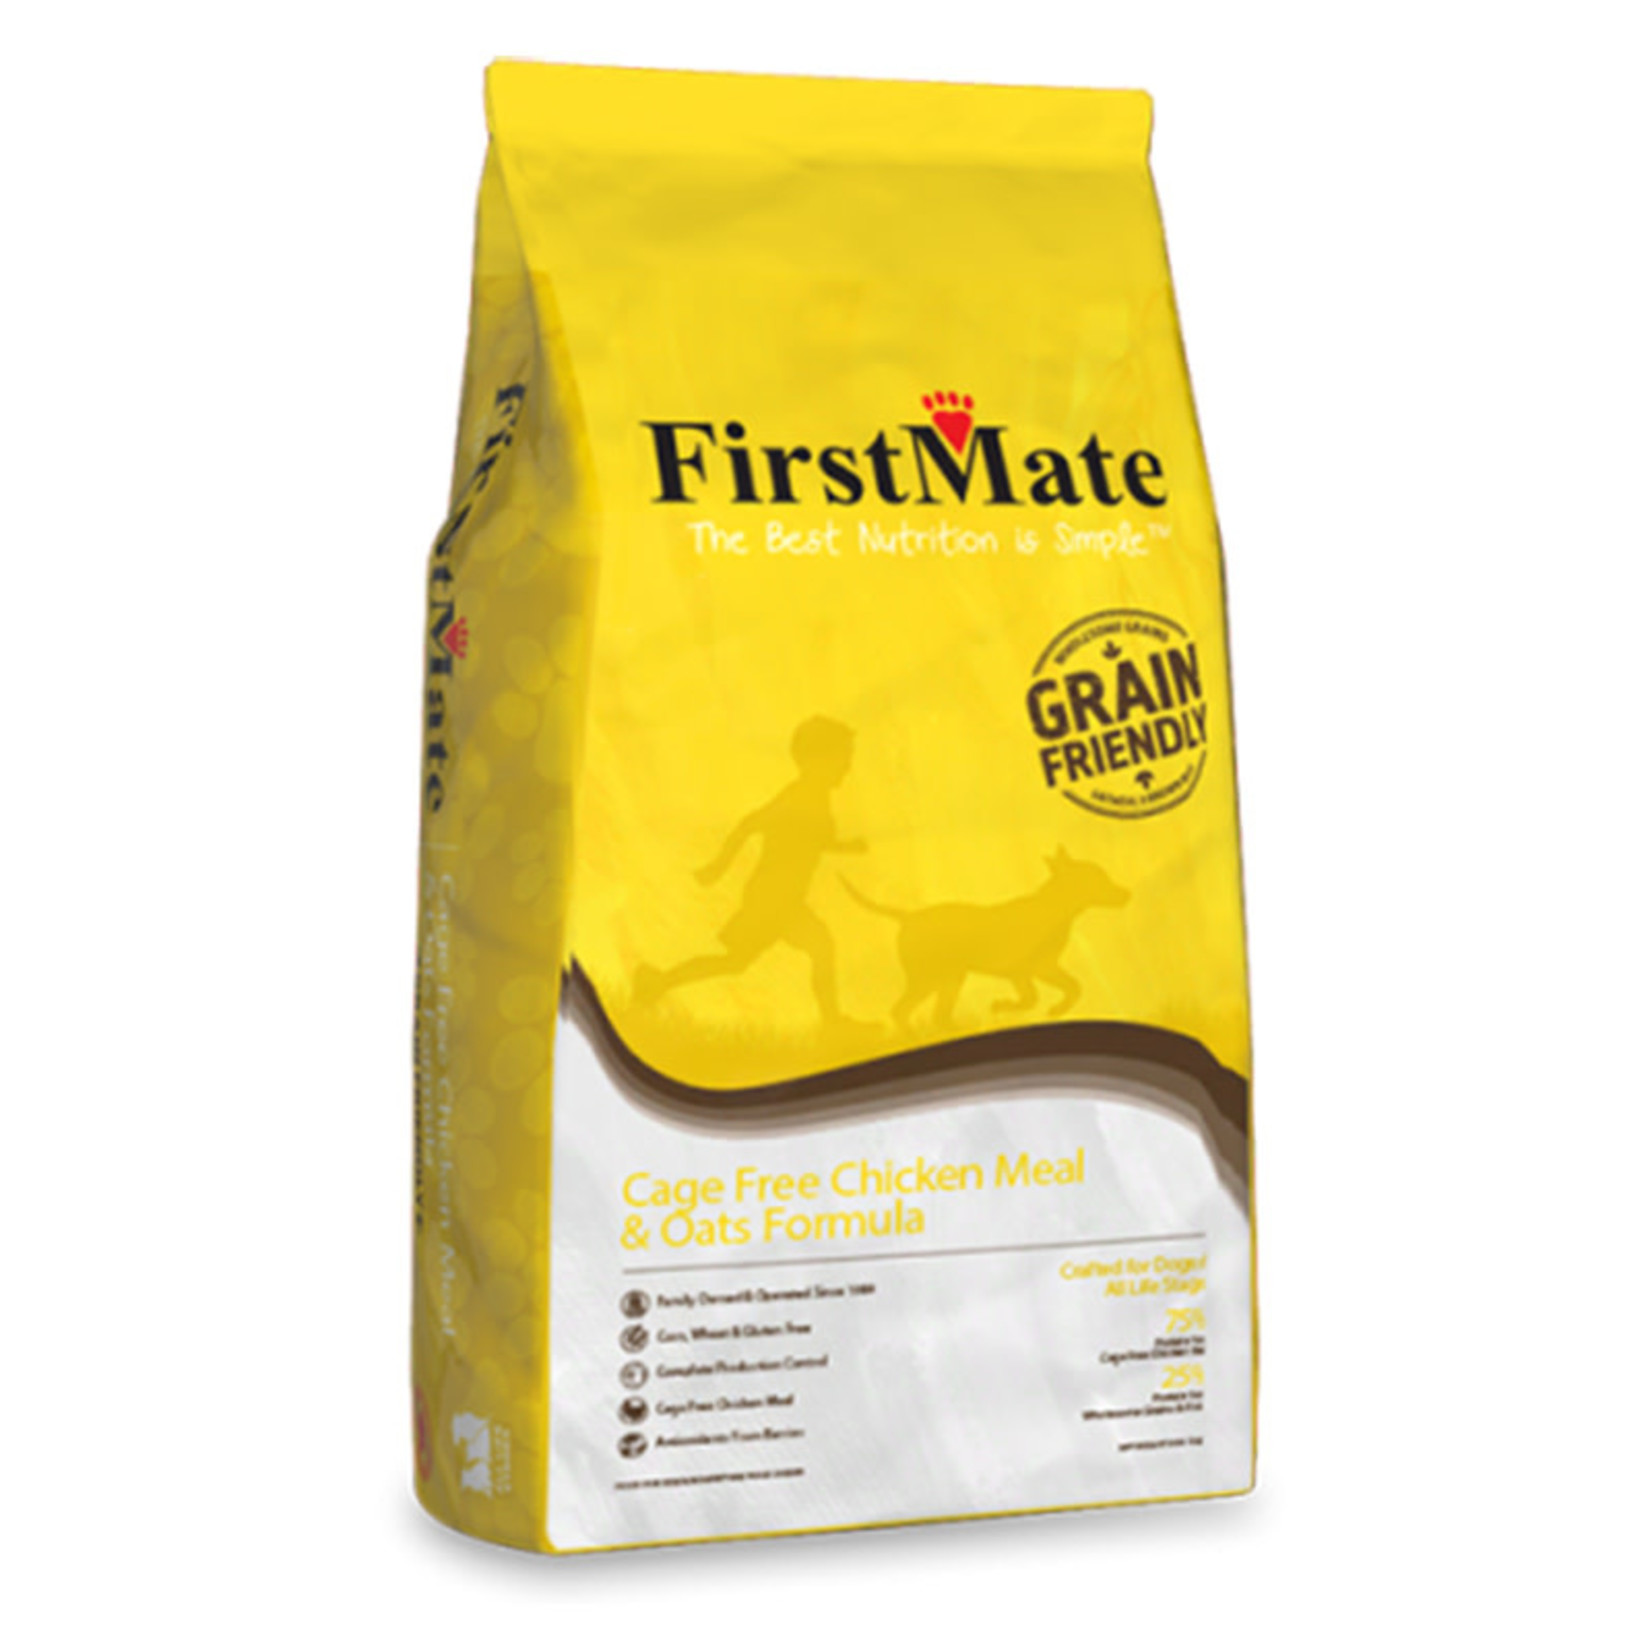 First Mate FM Cage Free Chicken & Oats